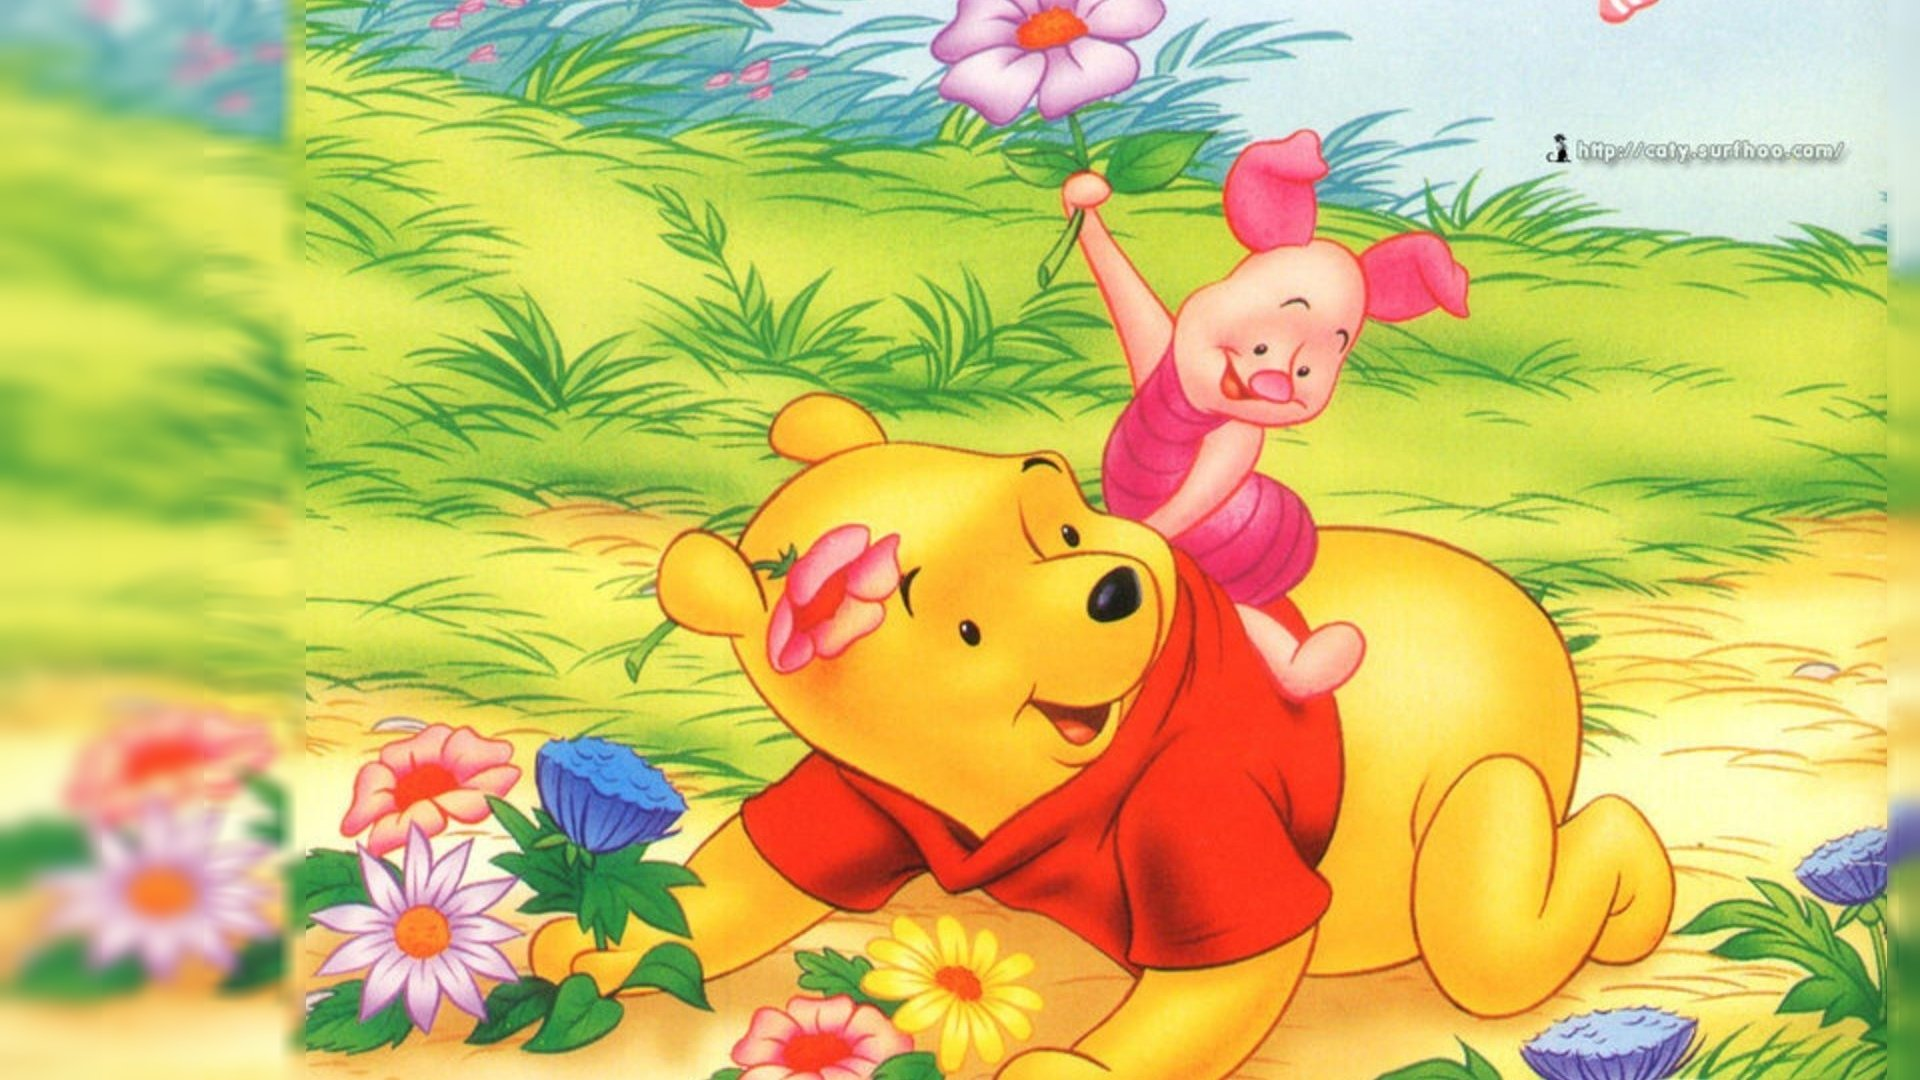 Winnie The Pooh Hd Wallpaper Background Image 1920x1080 Id